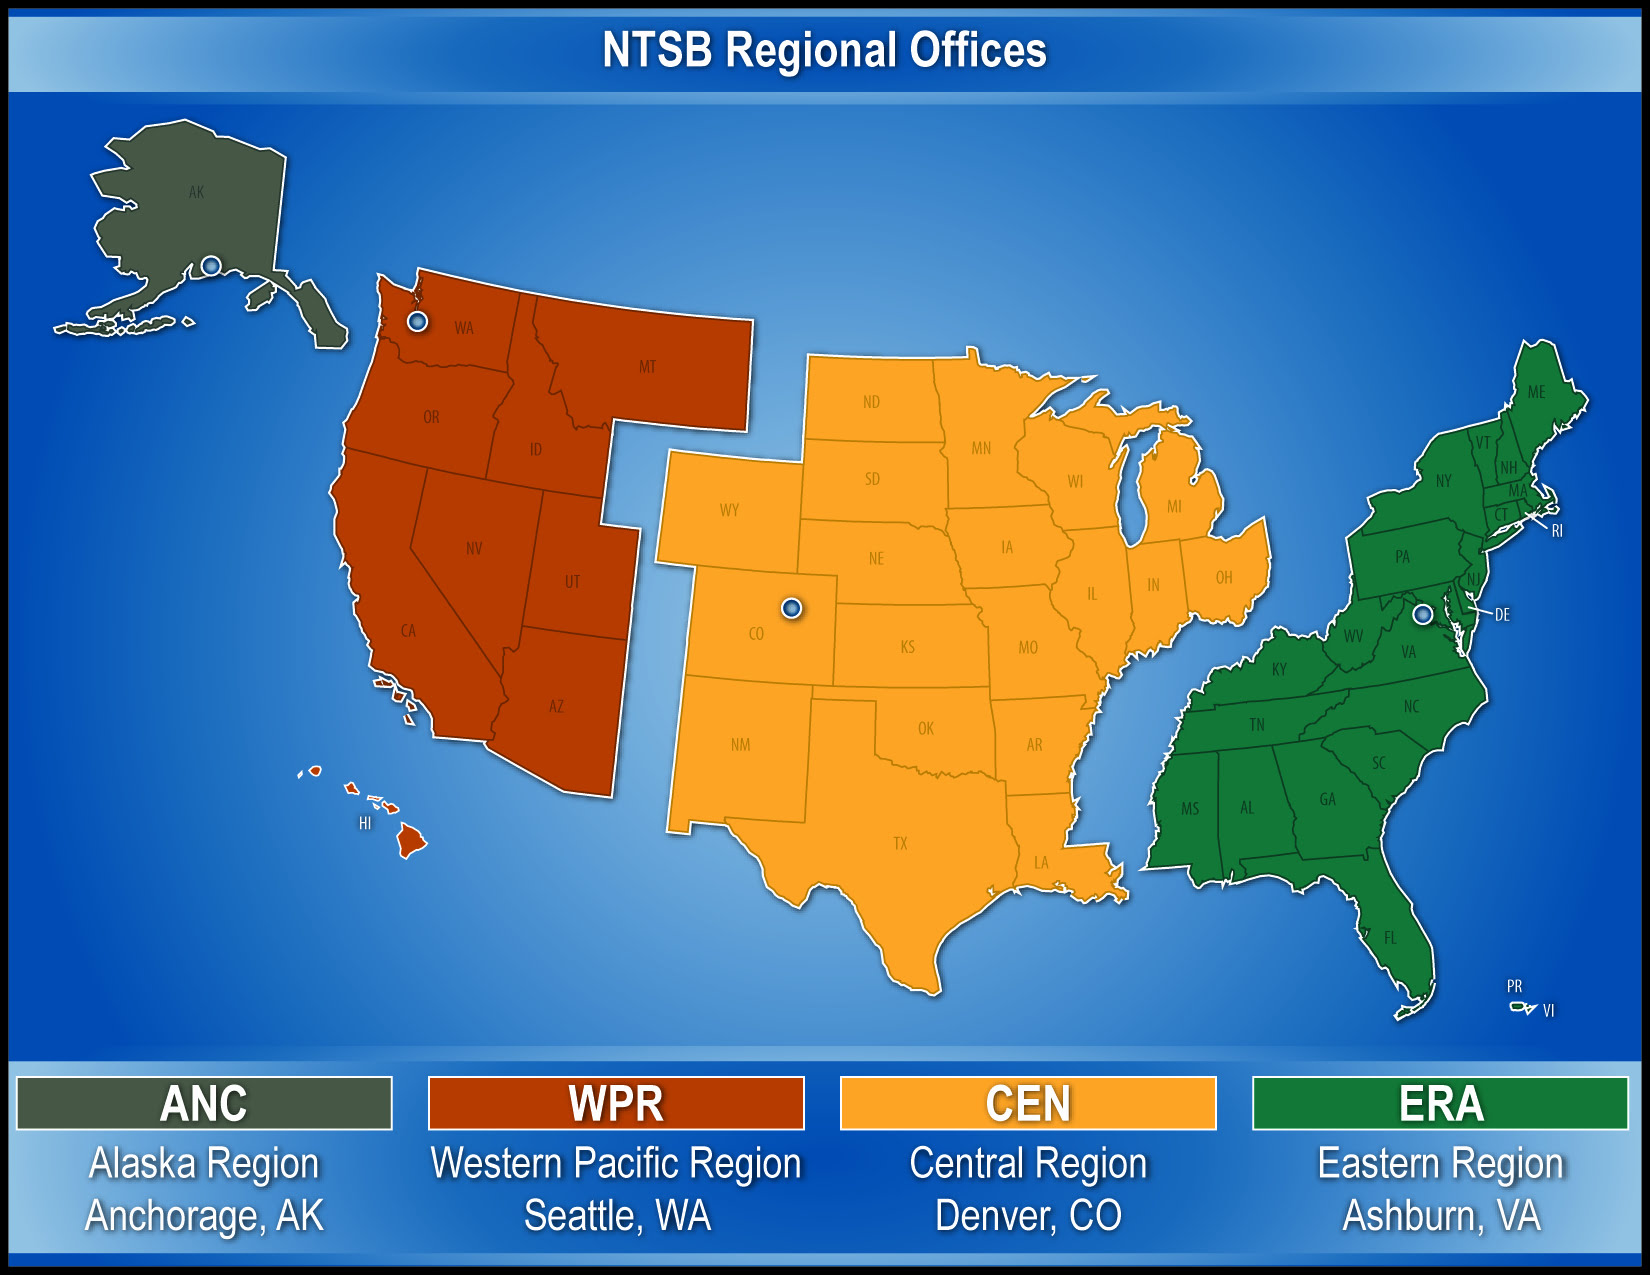 NTSB Regional Offices